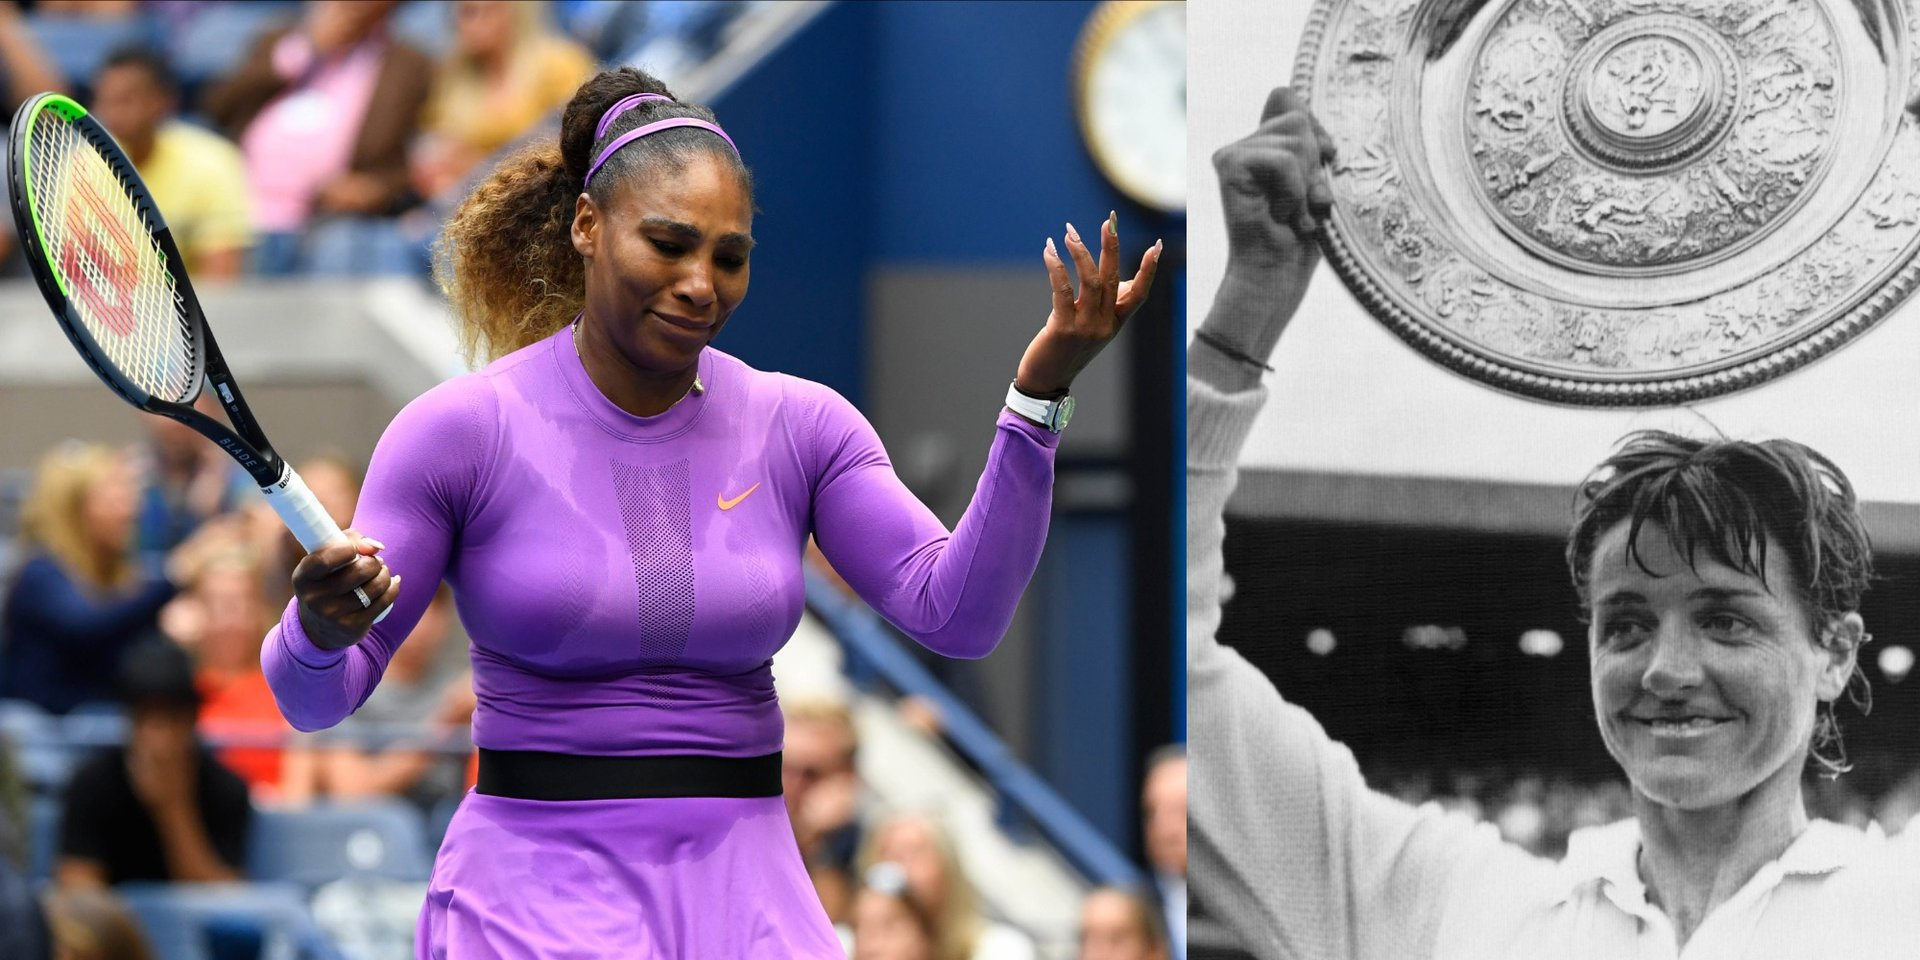 Tennis experts are beginning to doubt Serena Williams' ability to break the Grand Slam record, but her status as the greatest of all time doesn't hinge on it